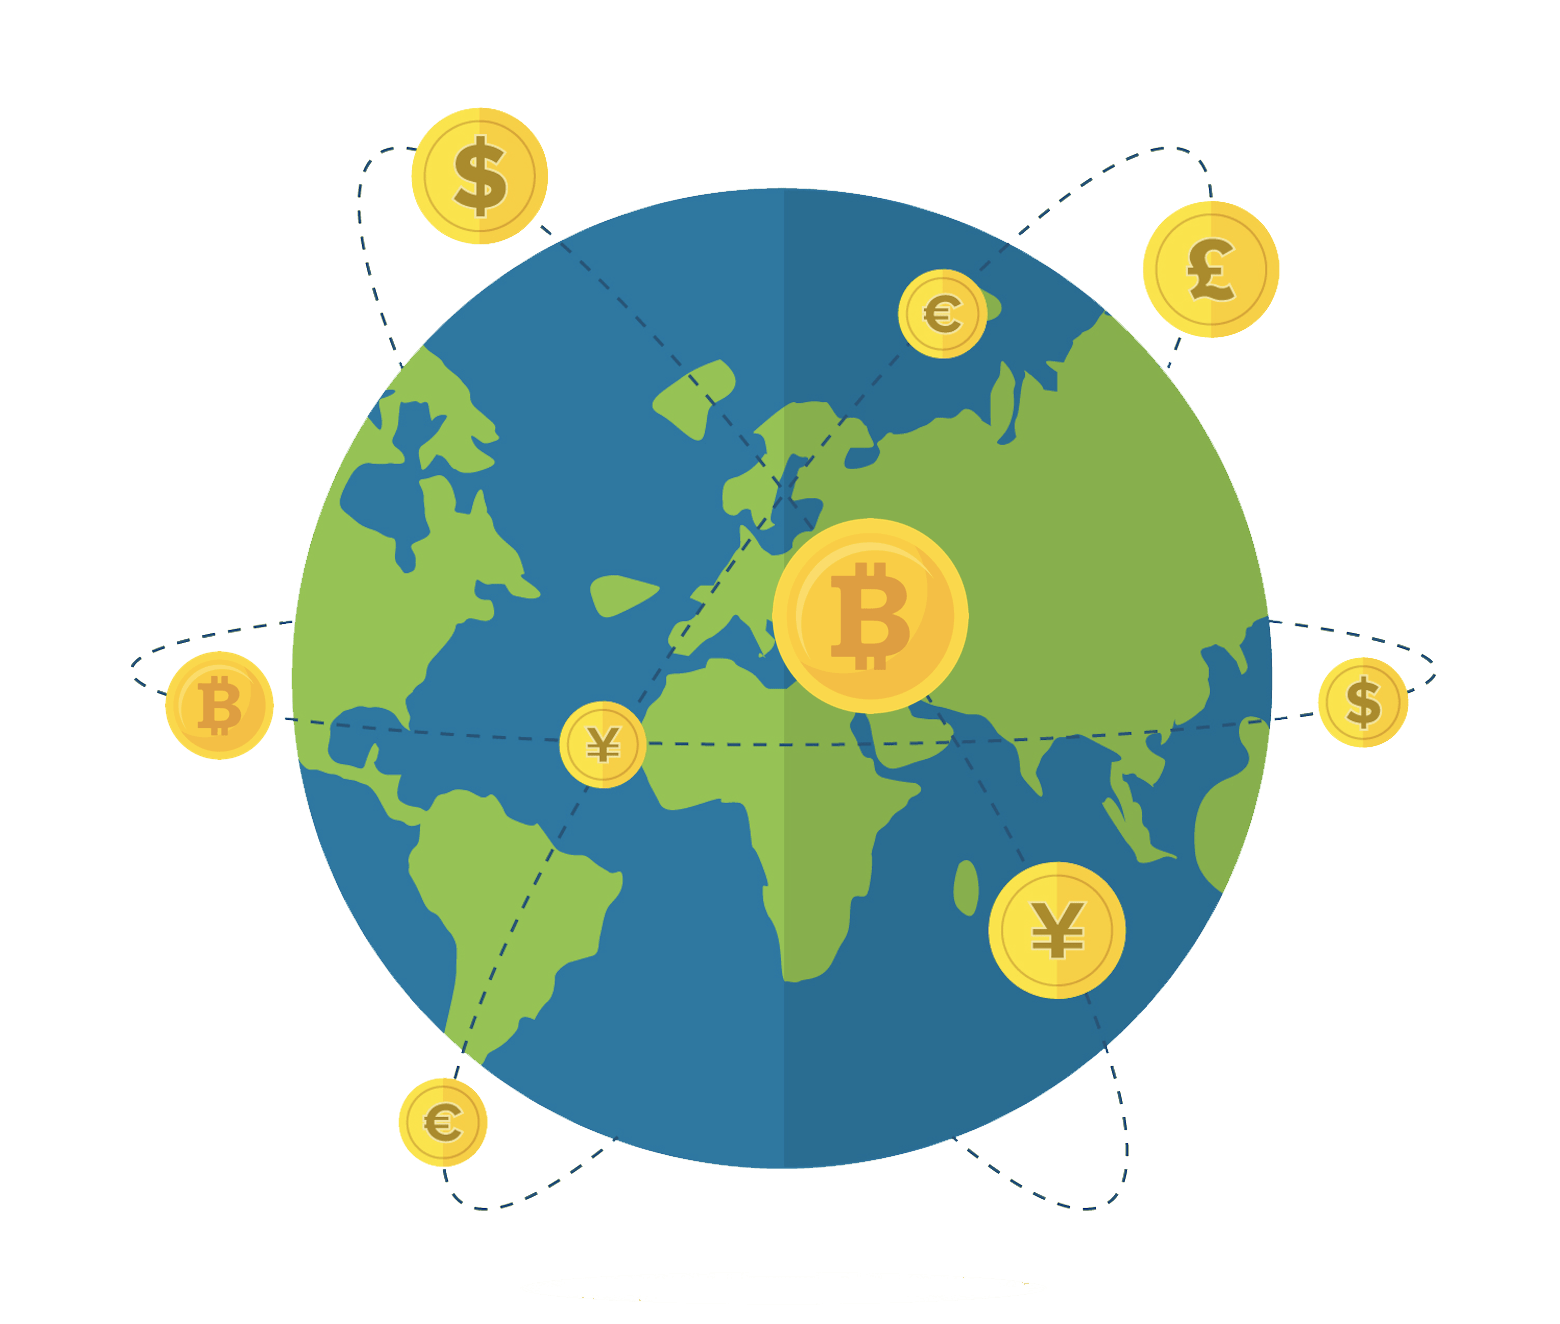 World wide currency exchange